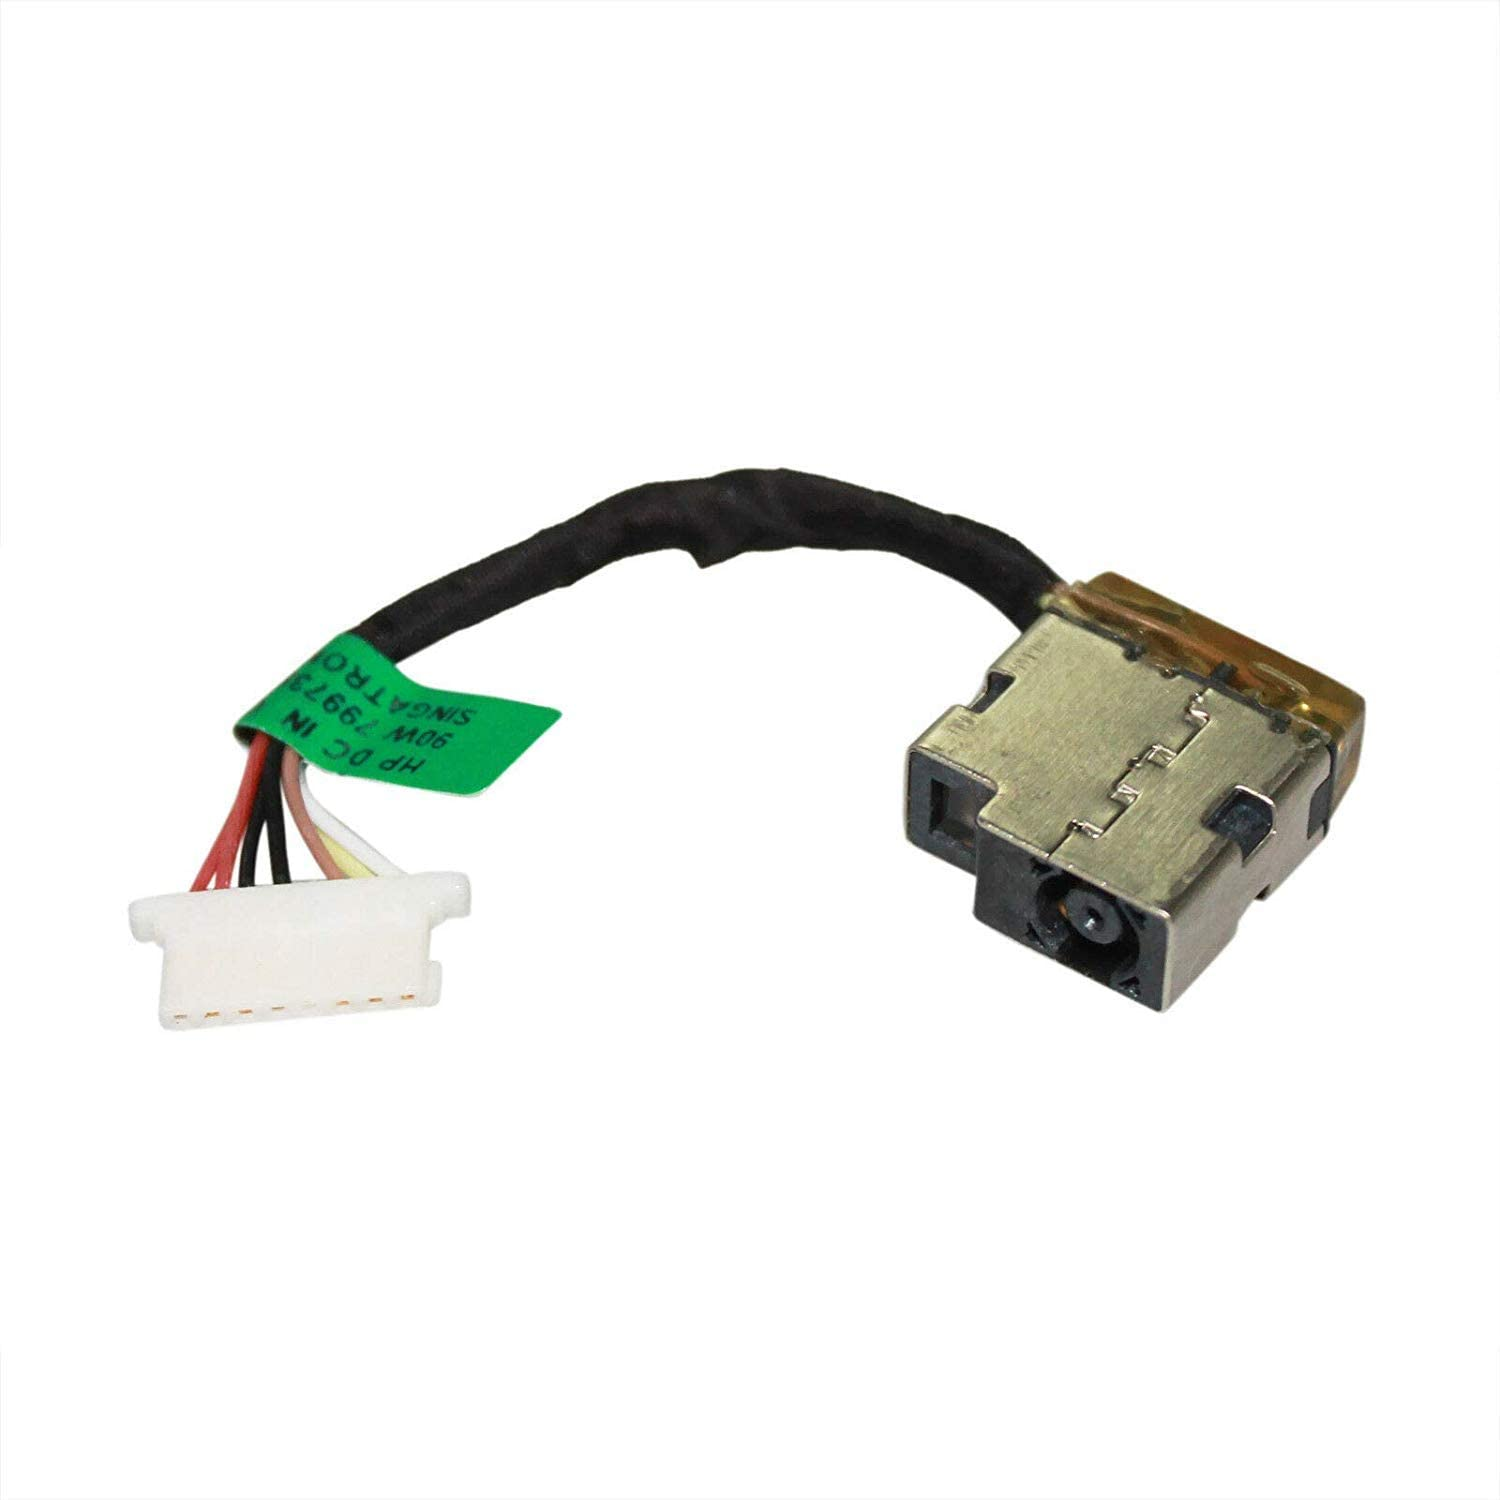 AC DC Jack Power Plug in Charging Port Connector Socket with Wire Cable Harness for HP 14-DF 14-DF0010NR 14-DF0011WM 14-DF0013CL 14-DF0013DS 14-DF0014DS 14-DF0015DS 14-DF0016DS 14-DF0018WM 14-DF0020NR